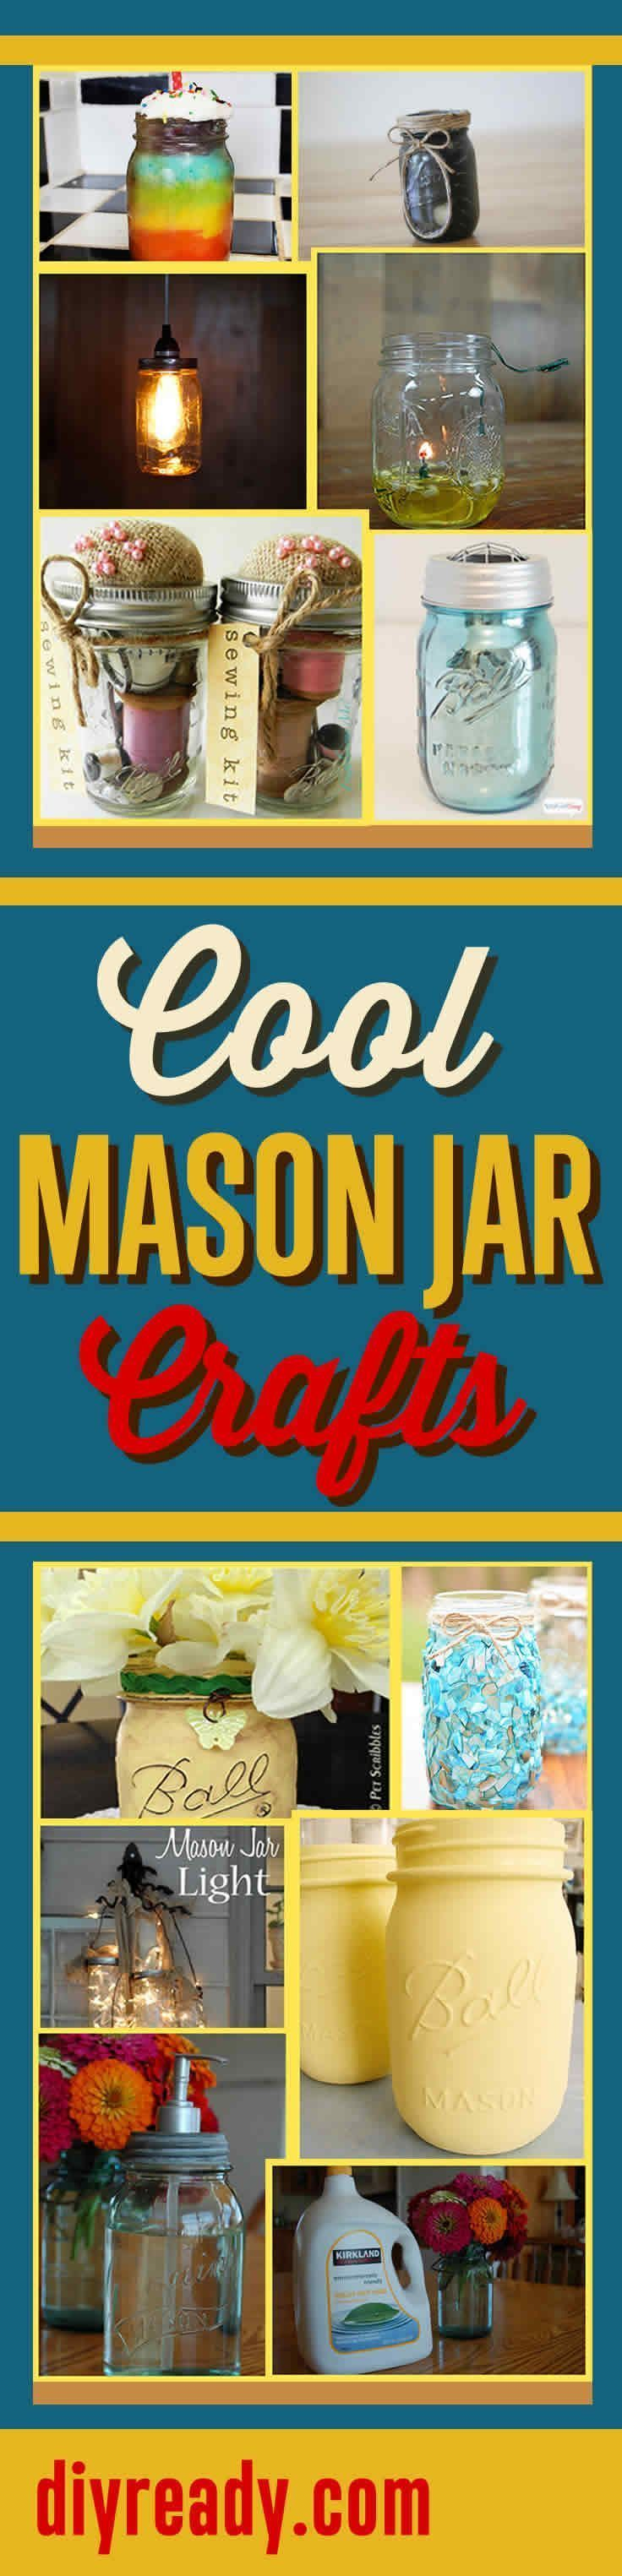 Cool Mason Jar Crafts & Do It Yourself Project Ideas at DIY Ready Projects http://diyready.com/mason-jar-crafts-cool-projects-with-mason-jars/